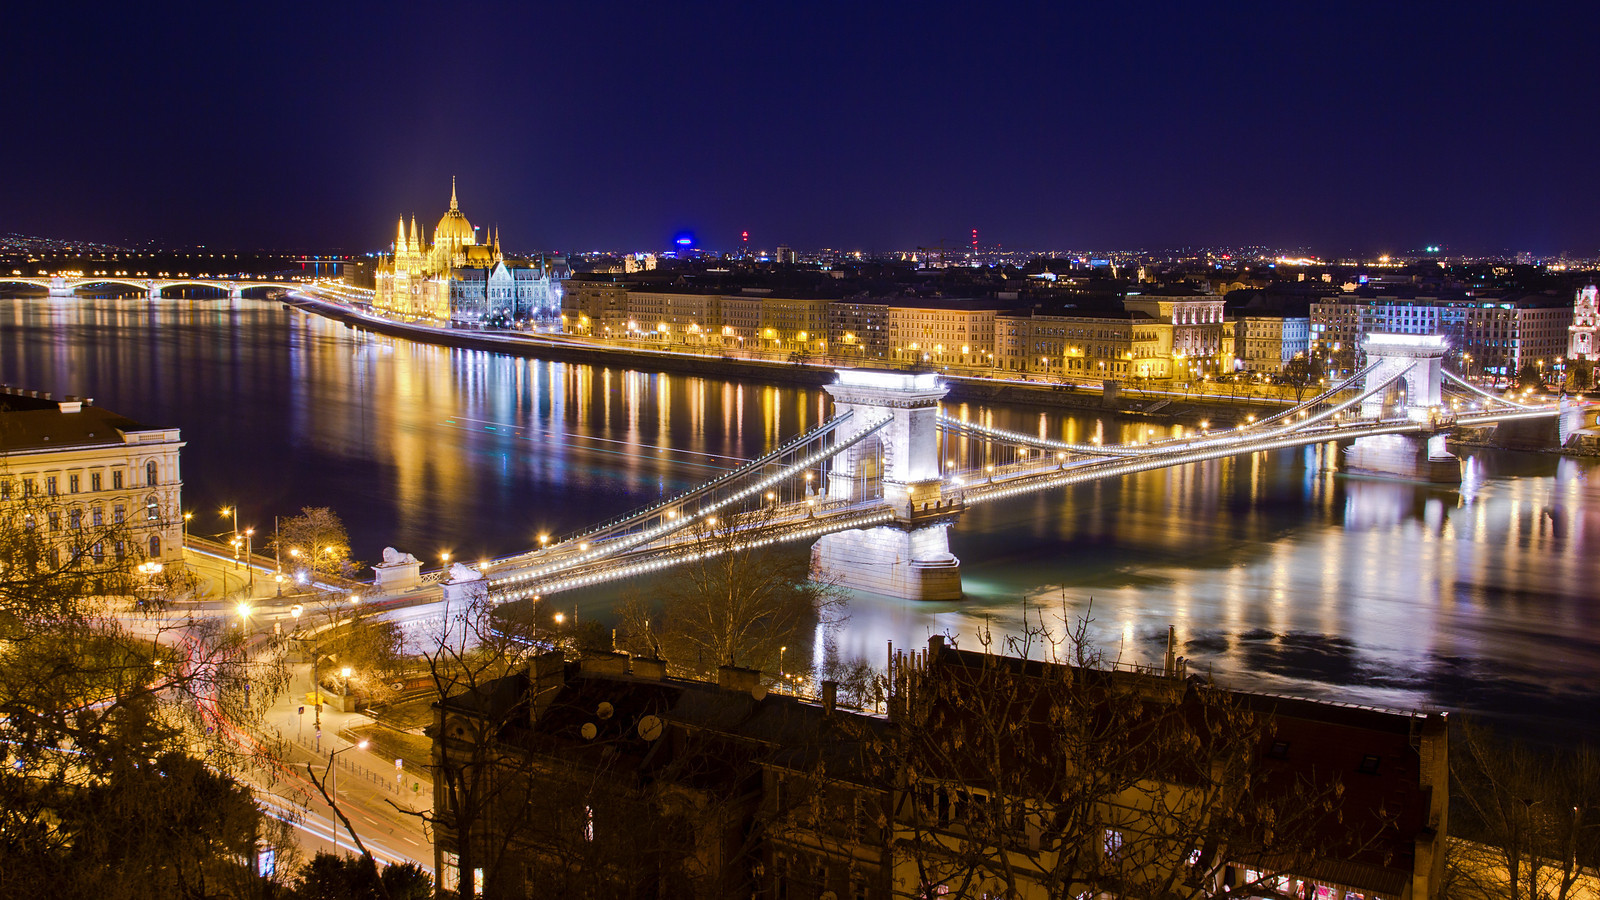 Chain Bridge and Parliament at night from Buda Castle